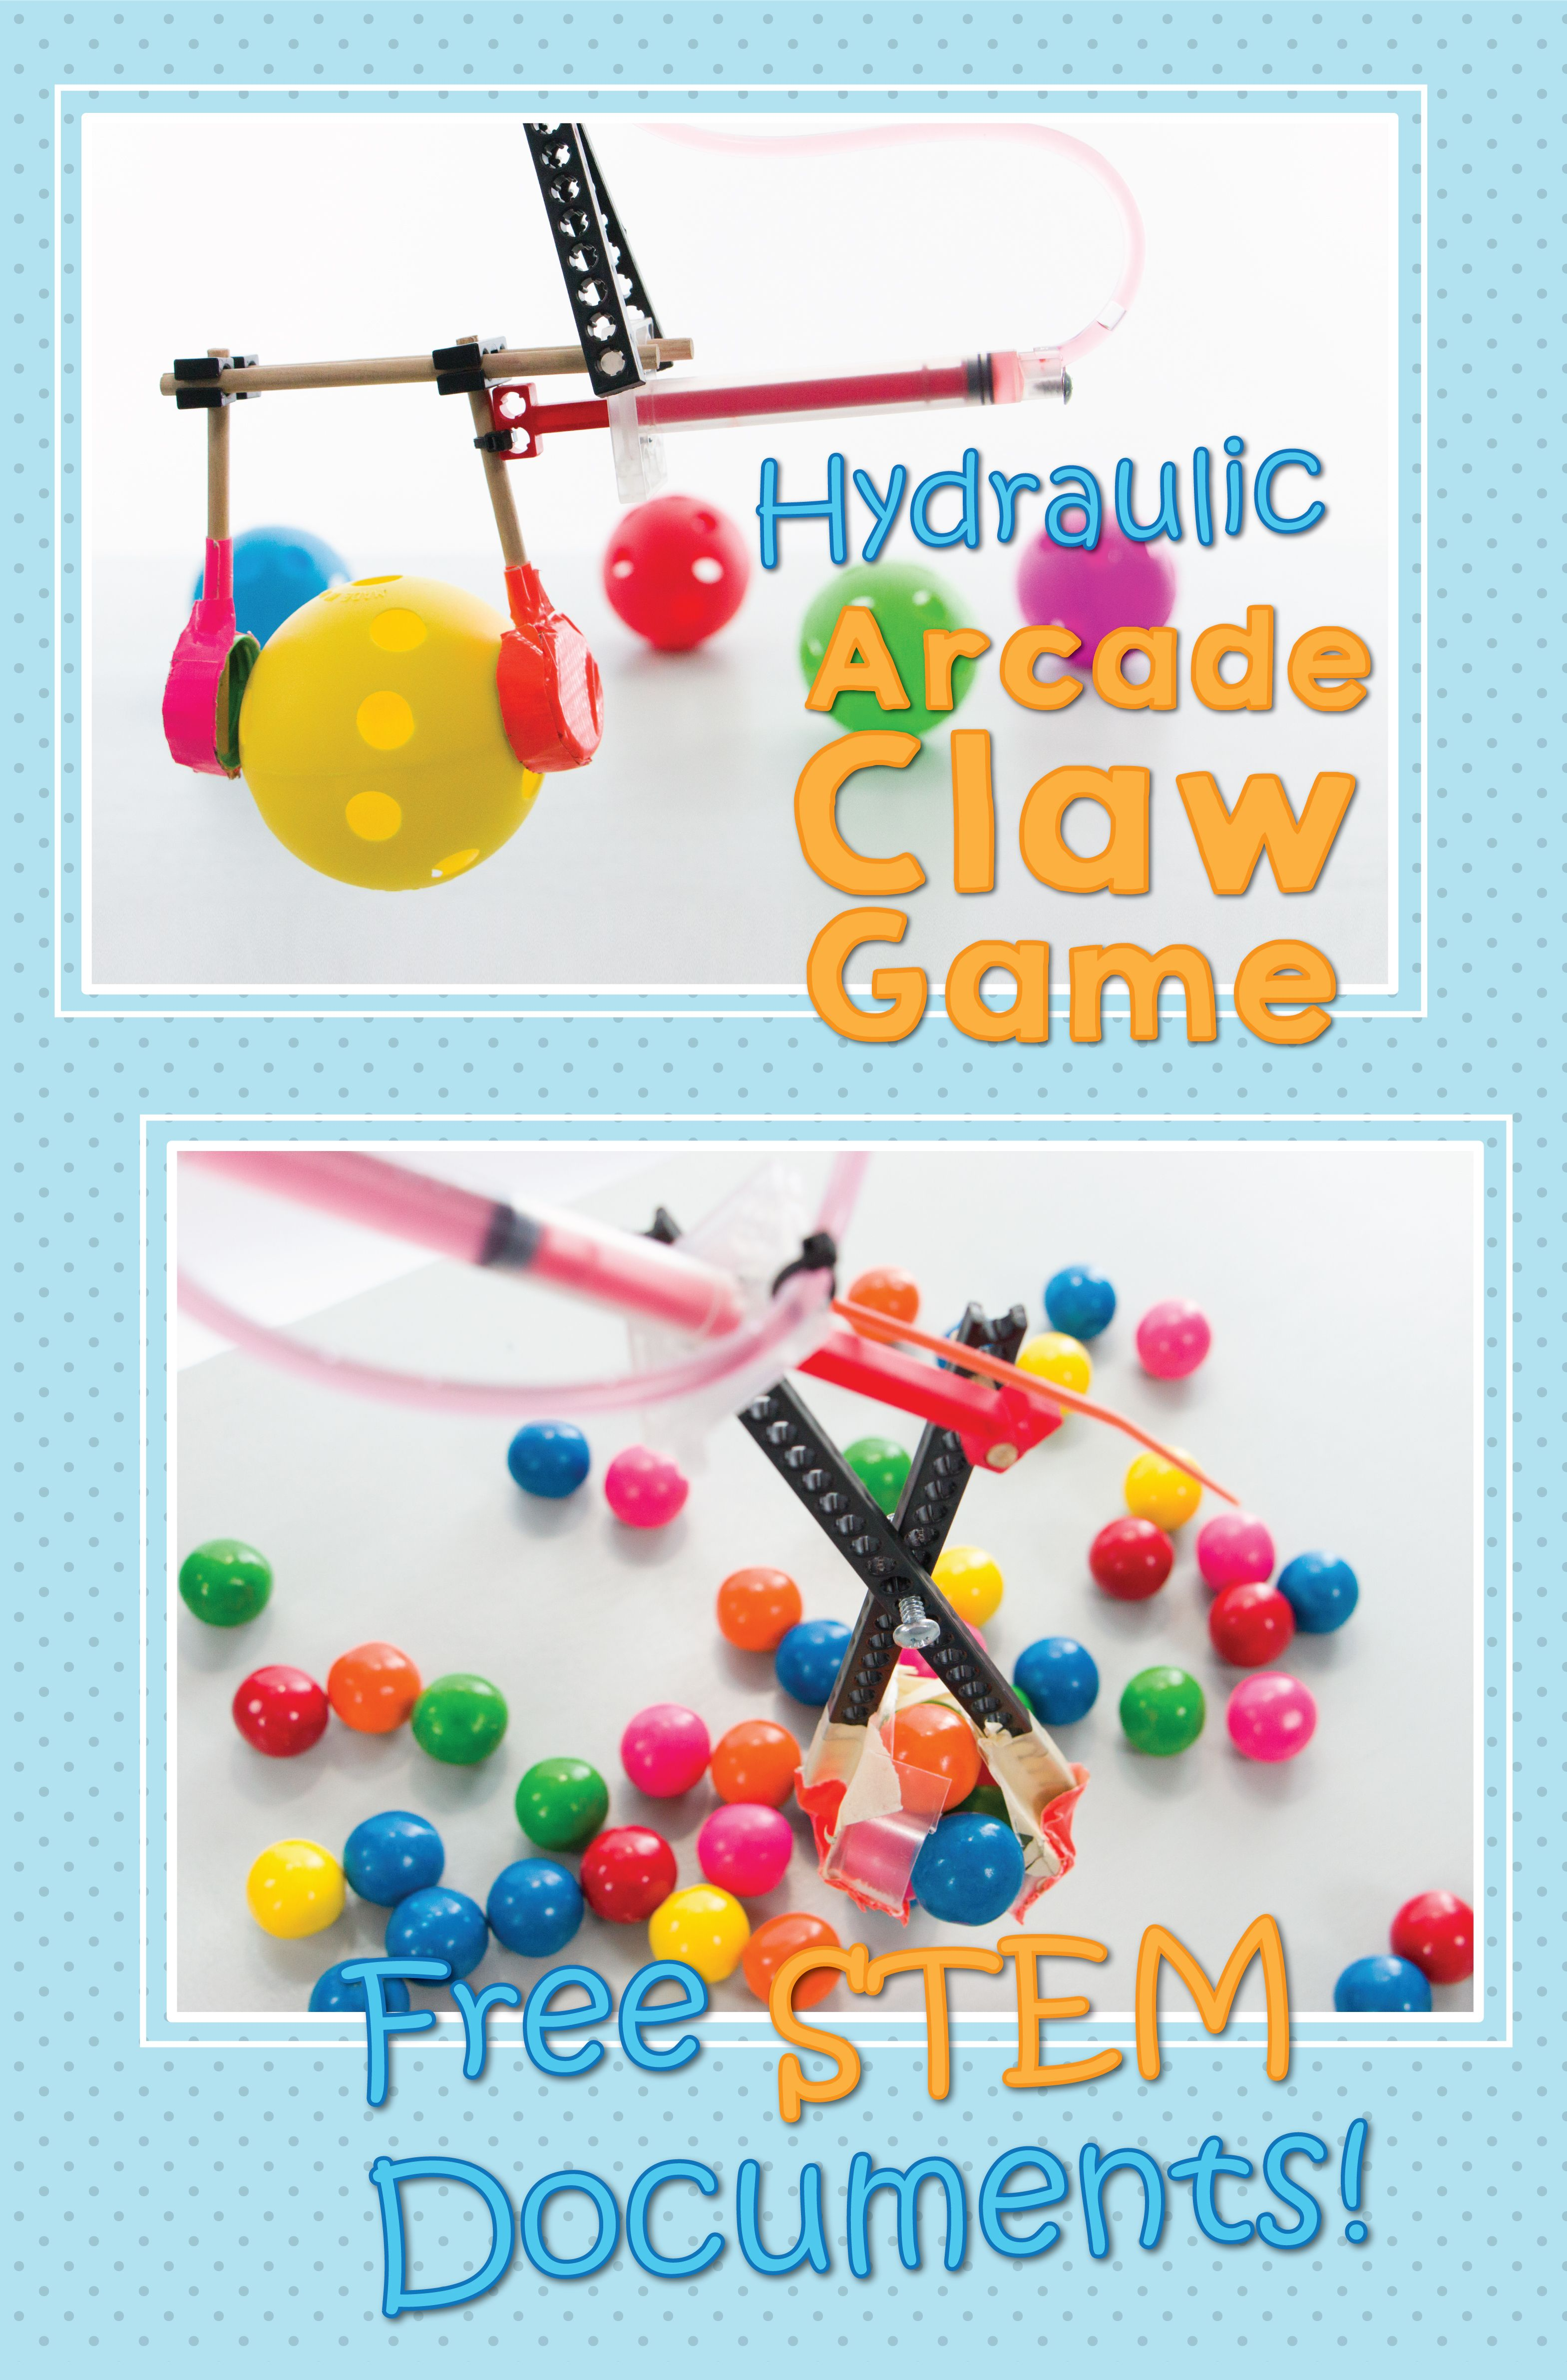 Free Stem Steam Maker Document Downloads For Arcade Style